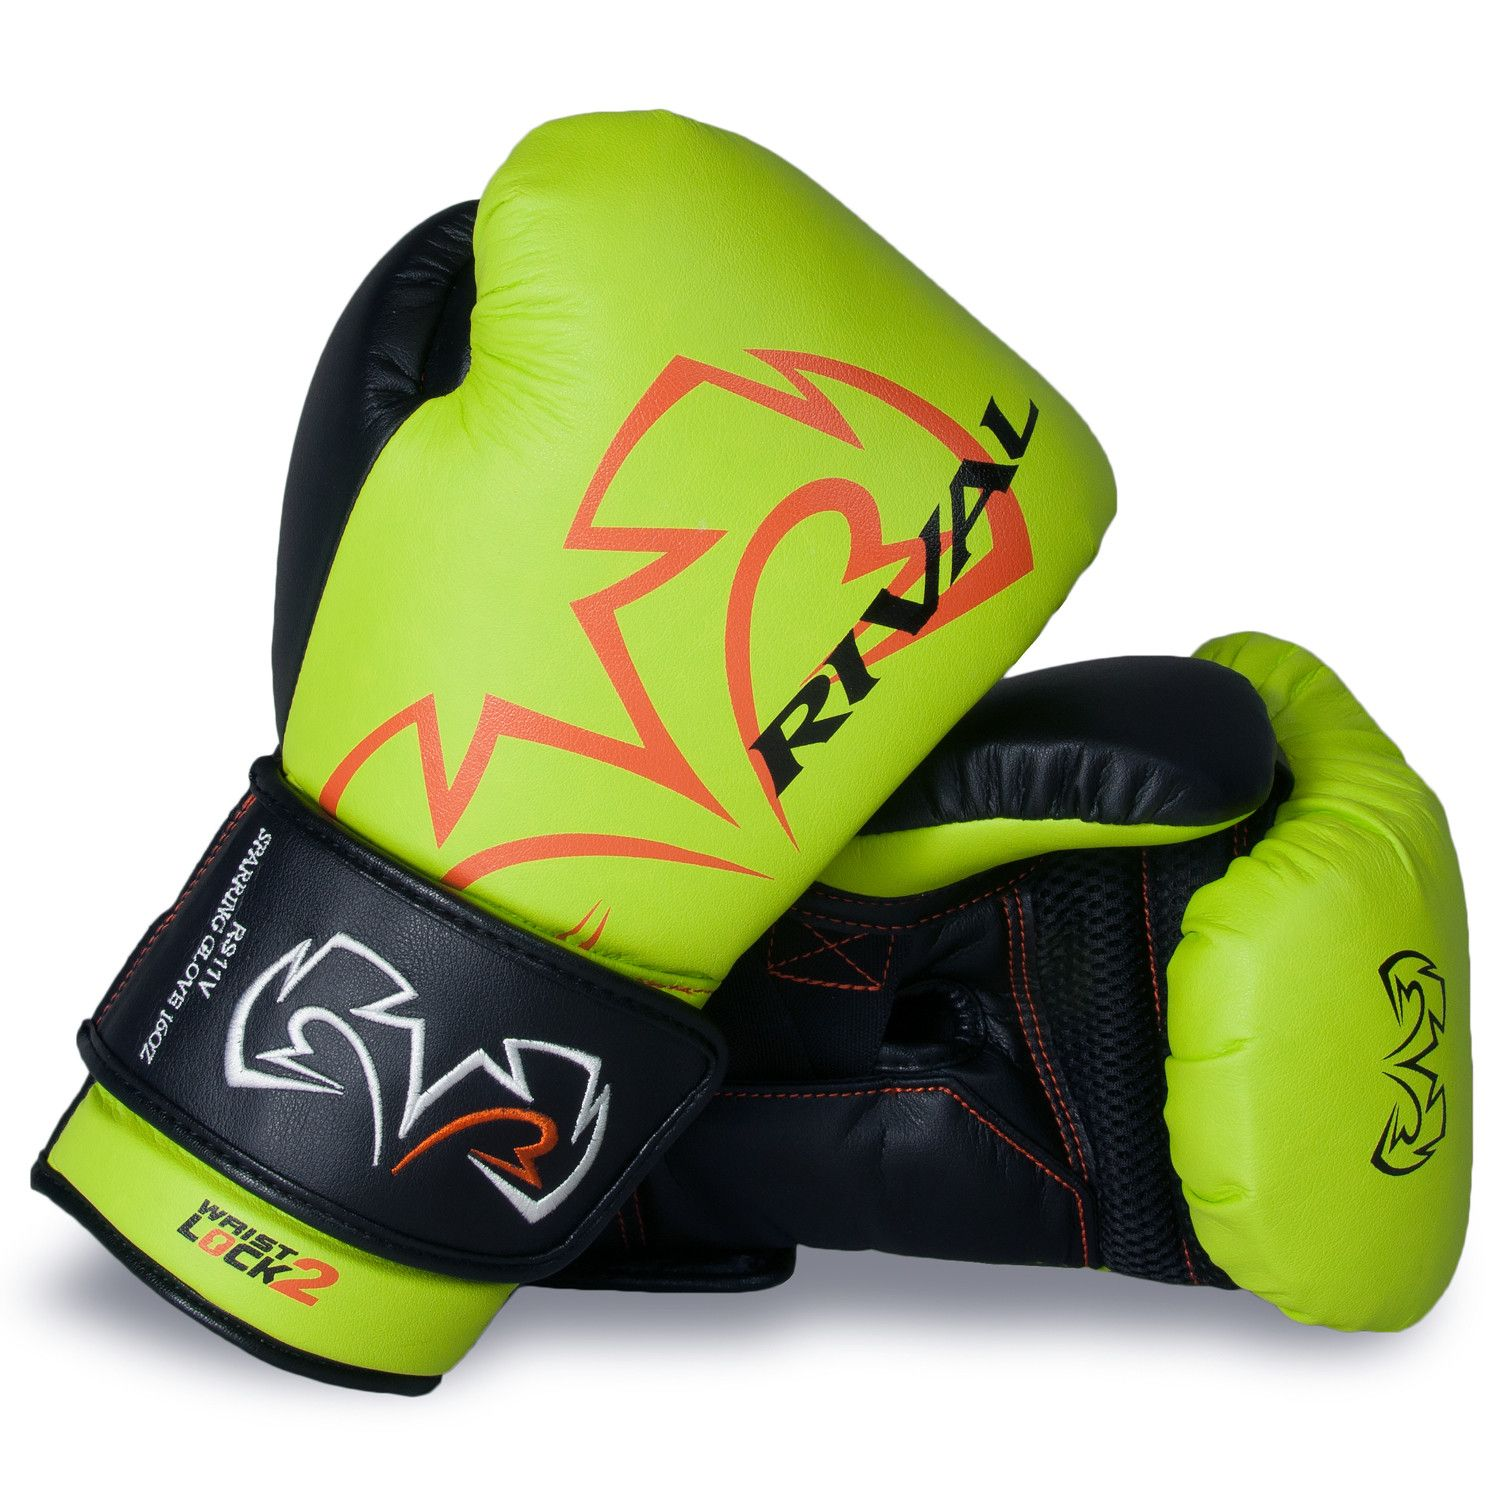 Evo Fitness Boxing Gloves Review: Rival RS11V Sparring Gloves